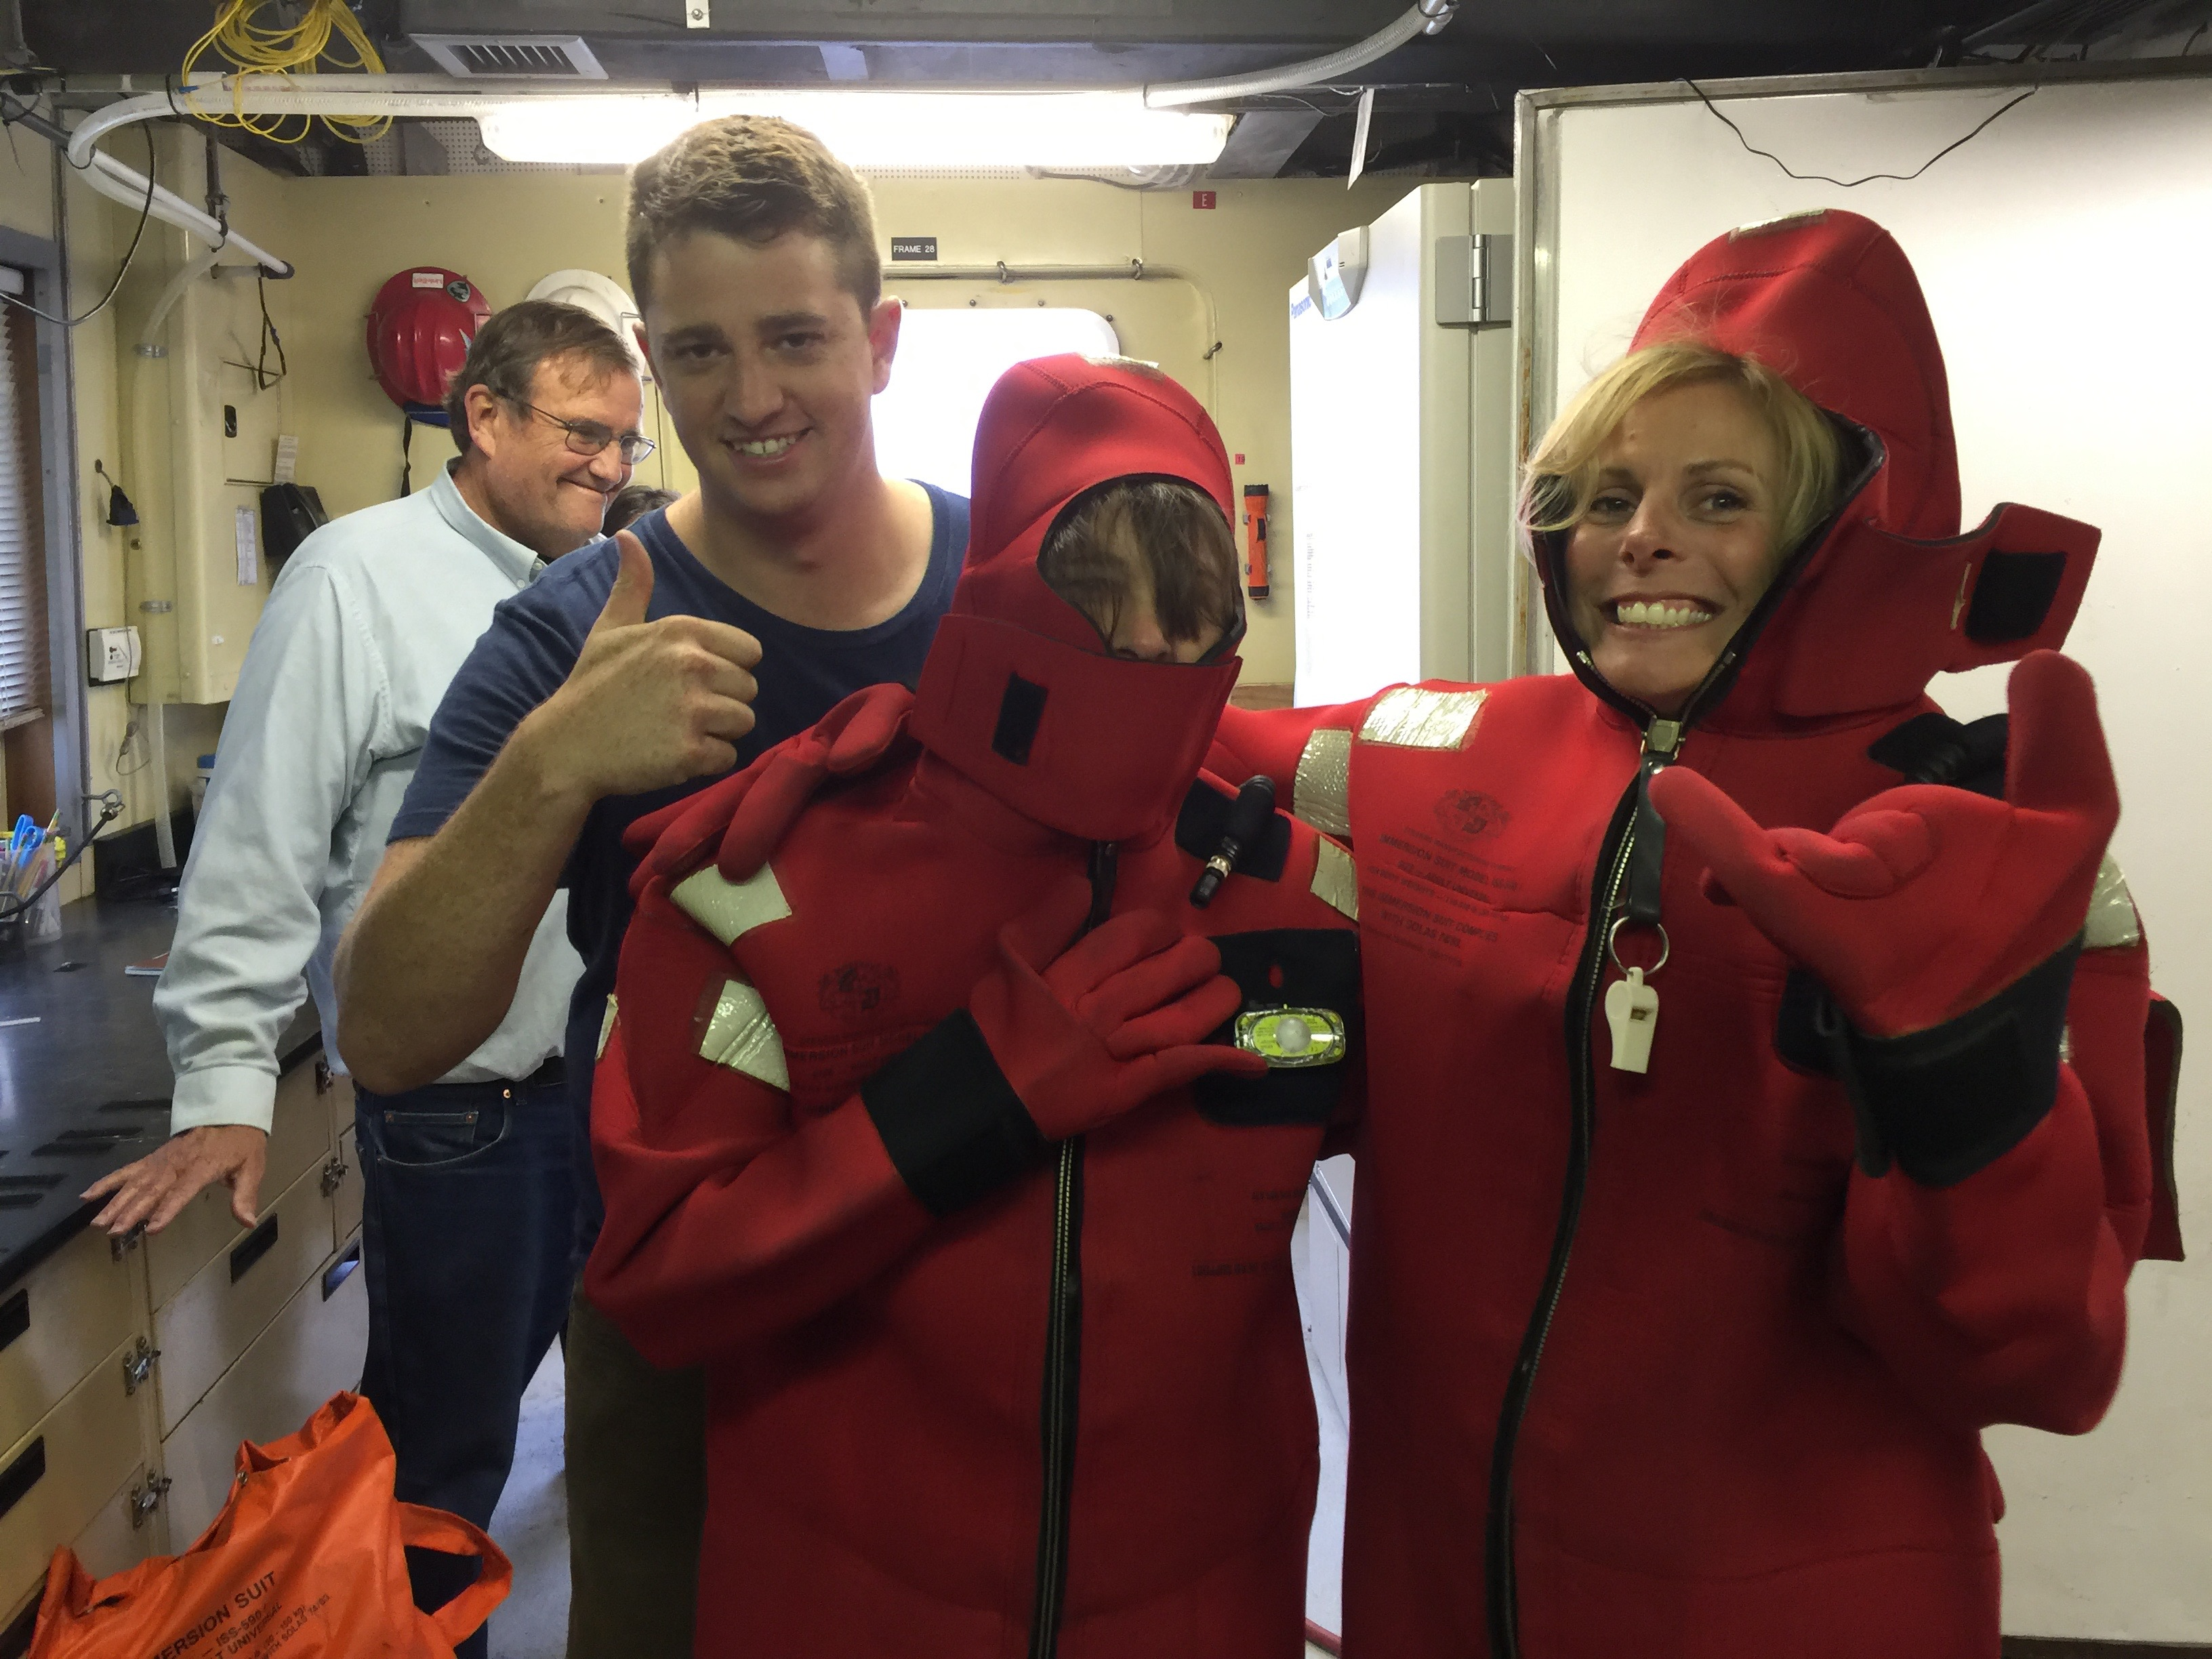 Second Mate Trevor giving Kris Walz and Shannon Johnson tips on how to get their immersion suits fully zipped up during our safety briefing. Jim McClain is photobombing behind them.